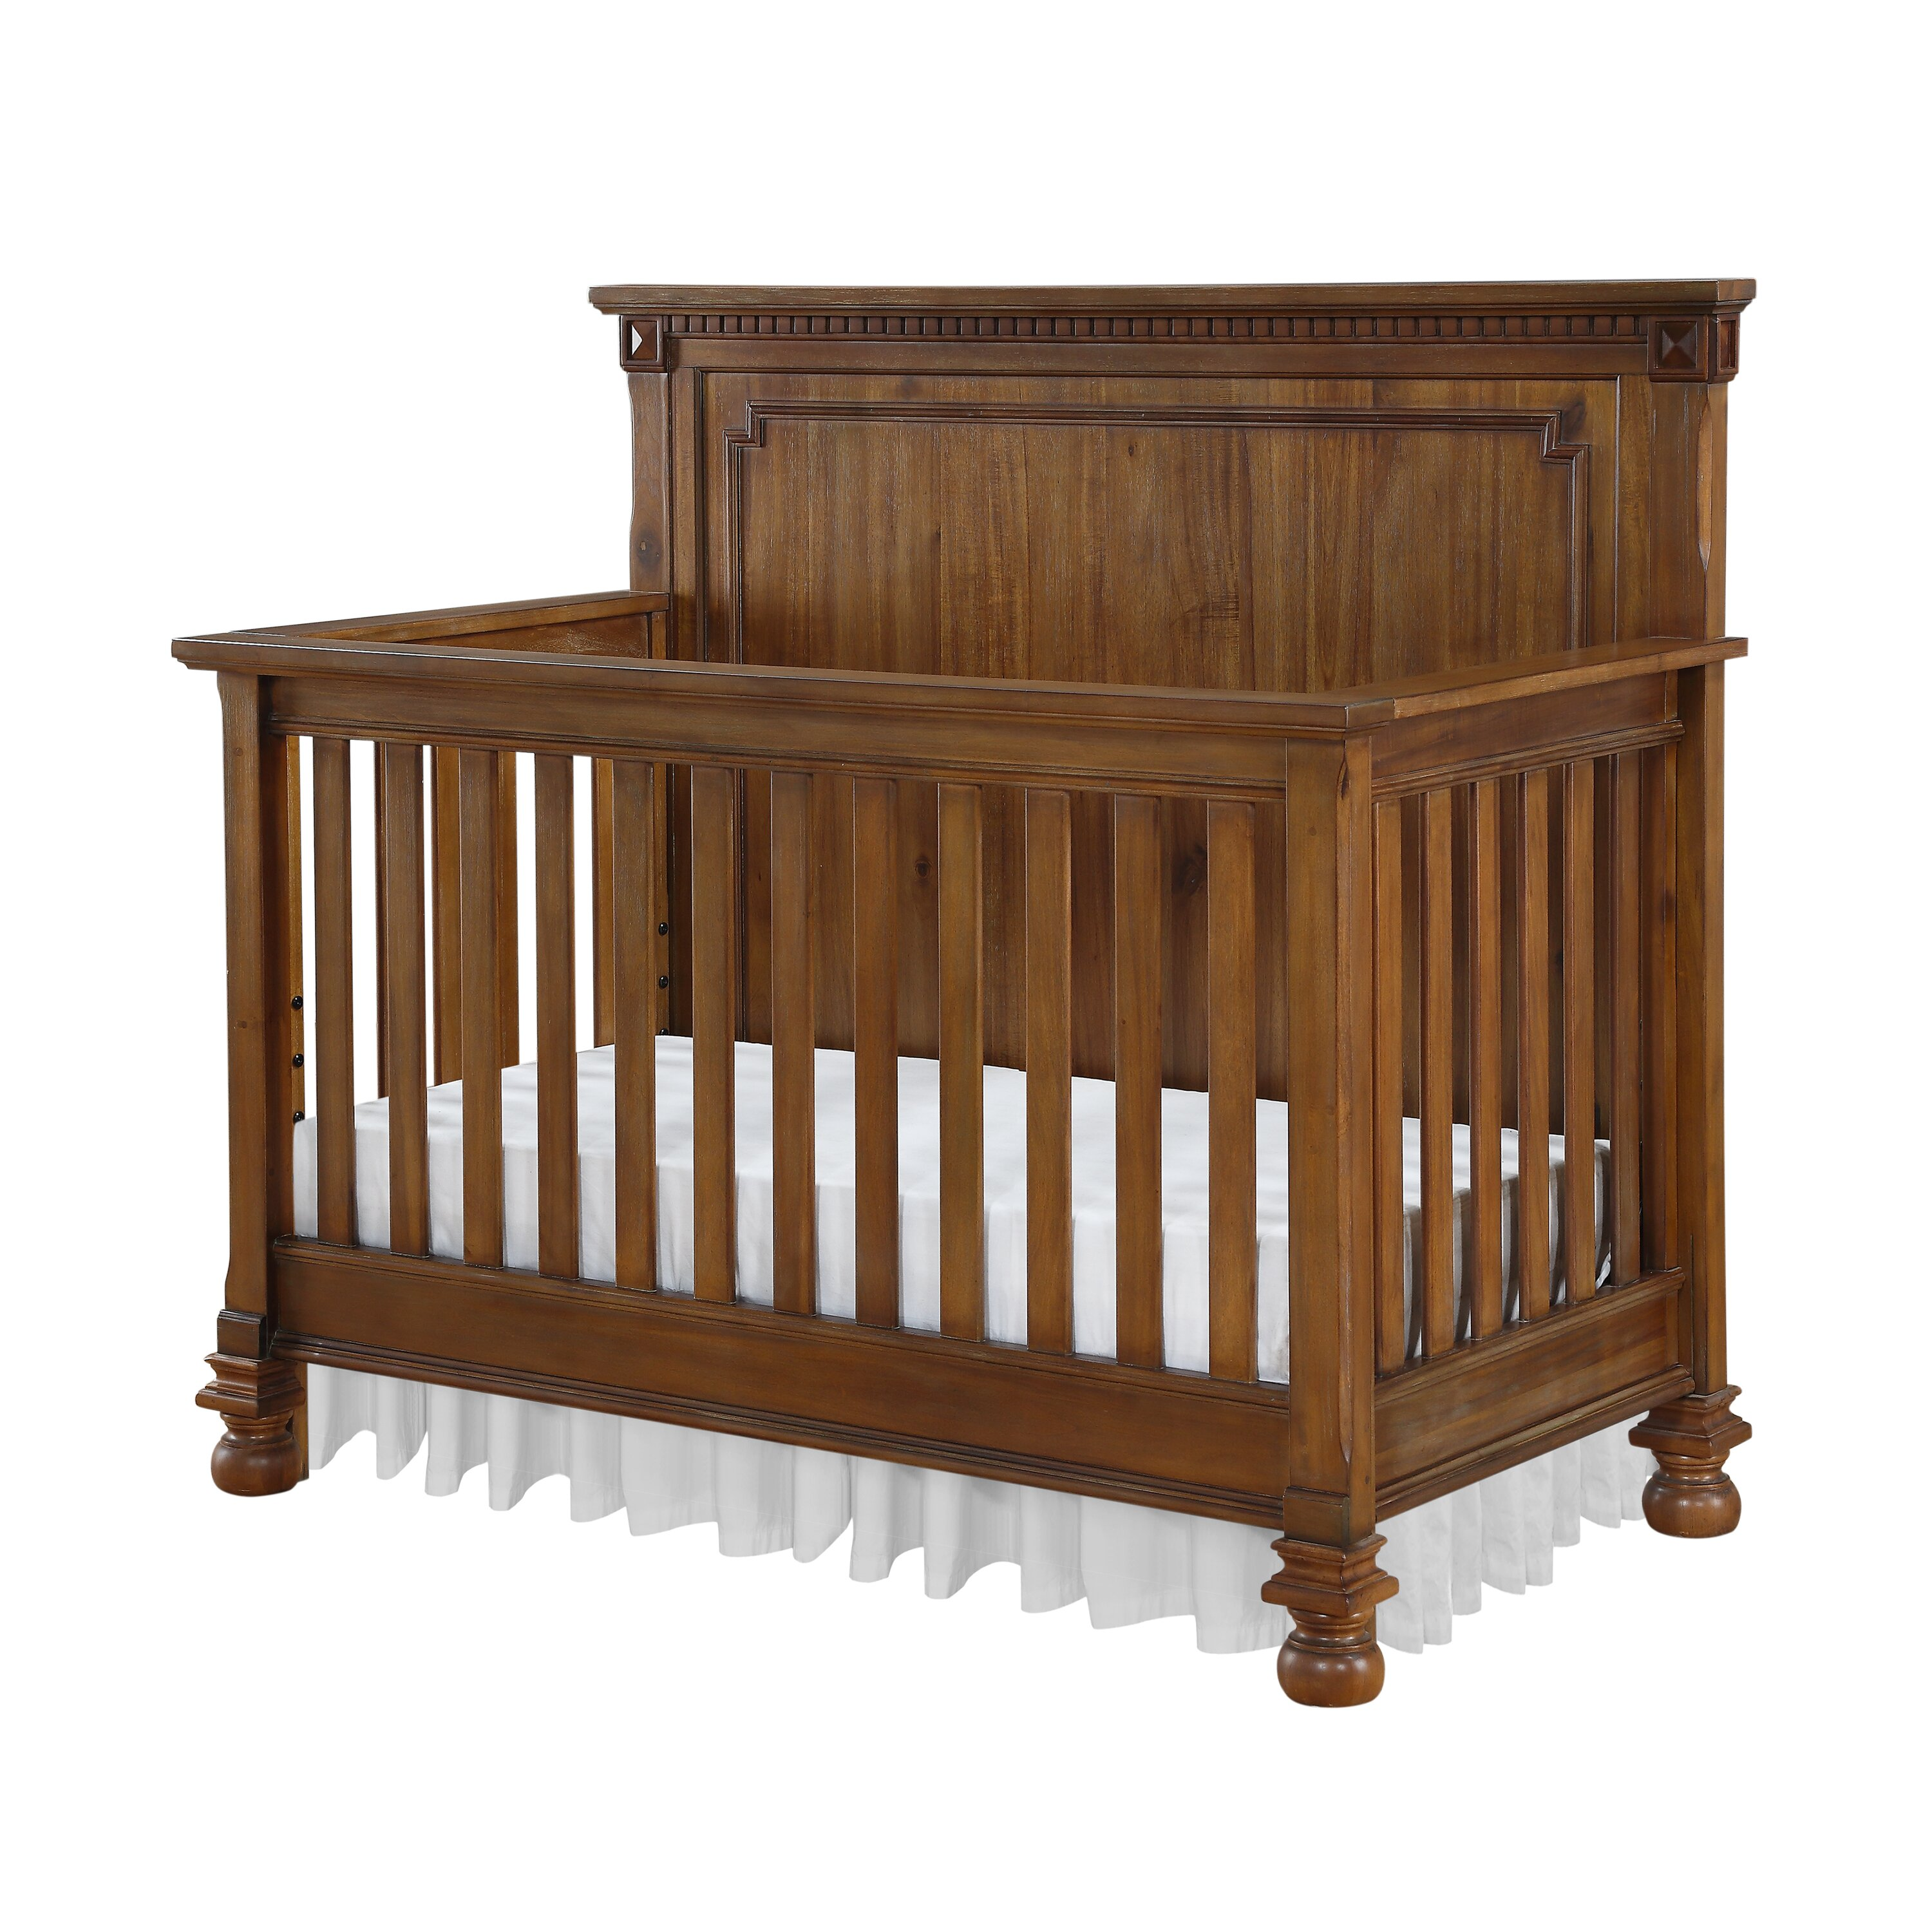 Stork craft crib parts 2 1 million drop side cribs for Child craft convertible crib instructions